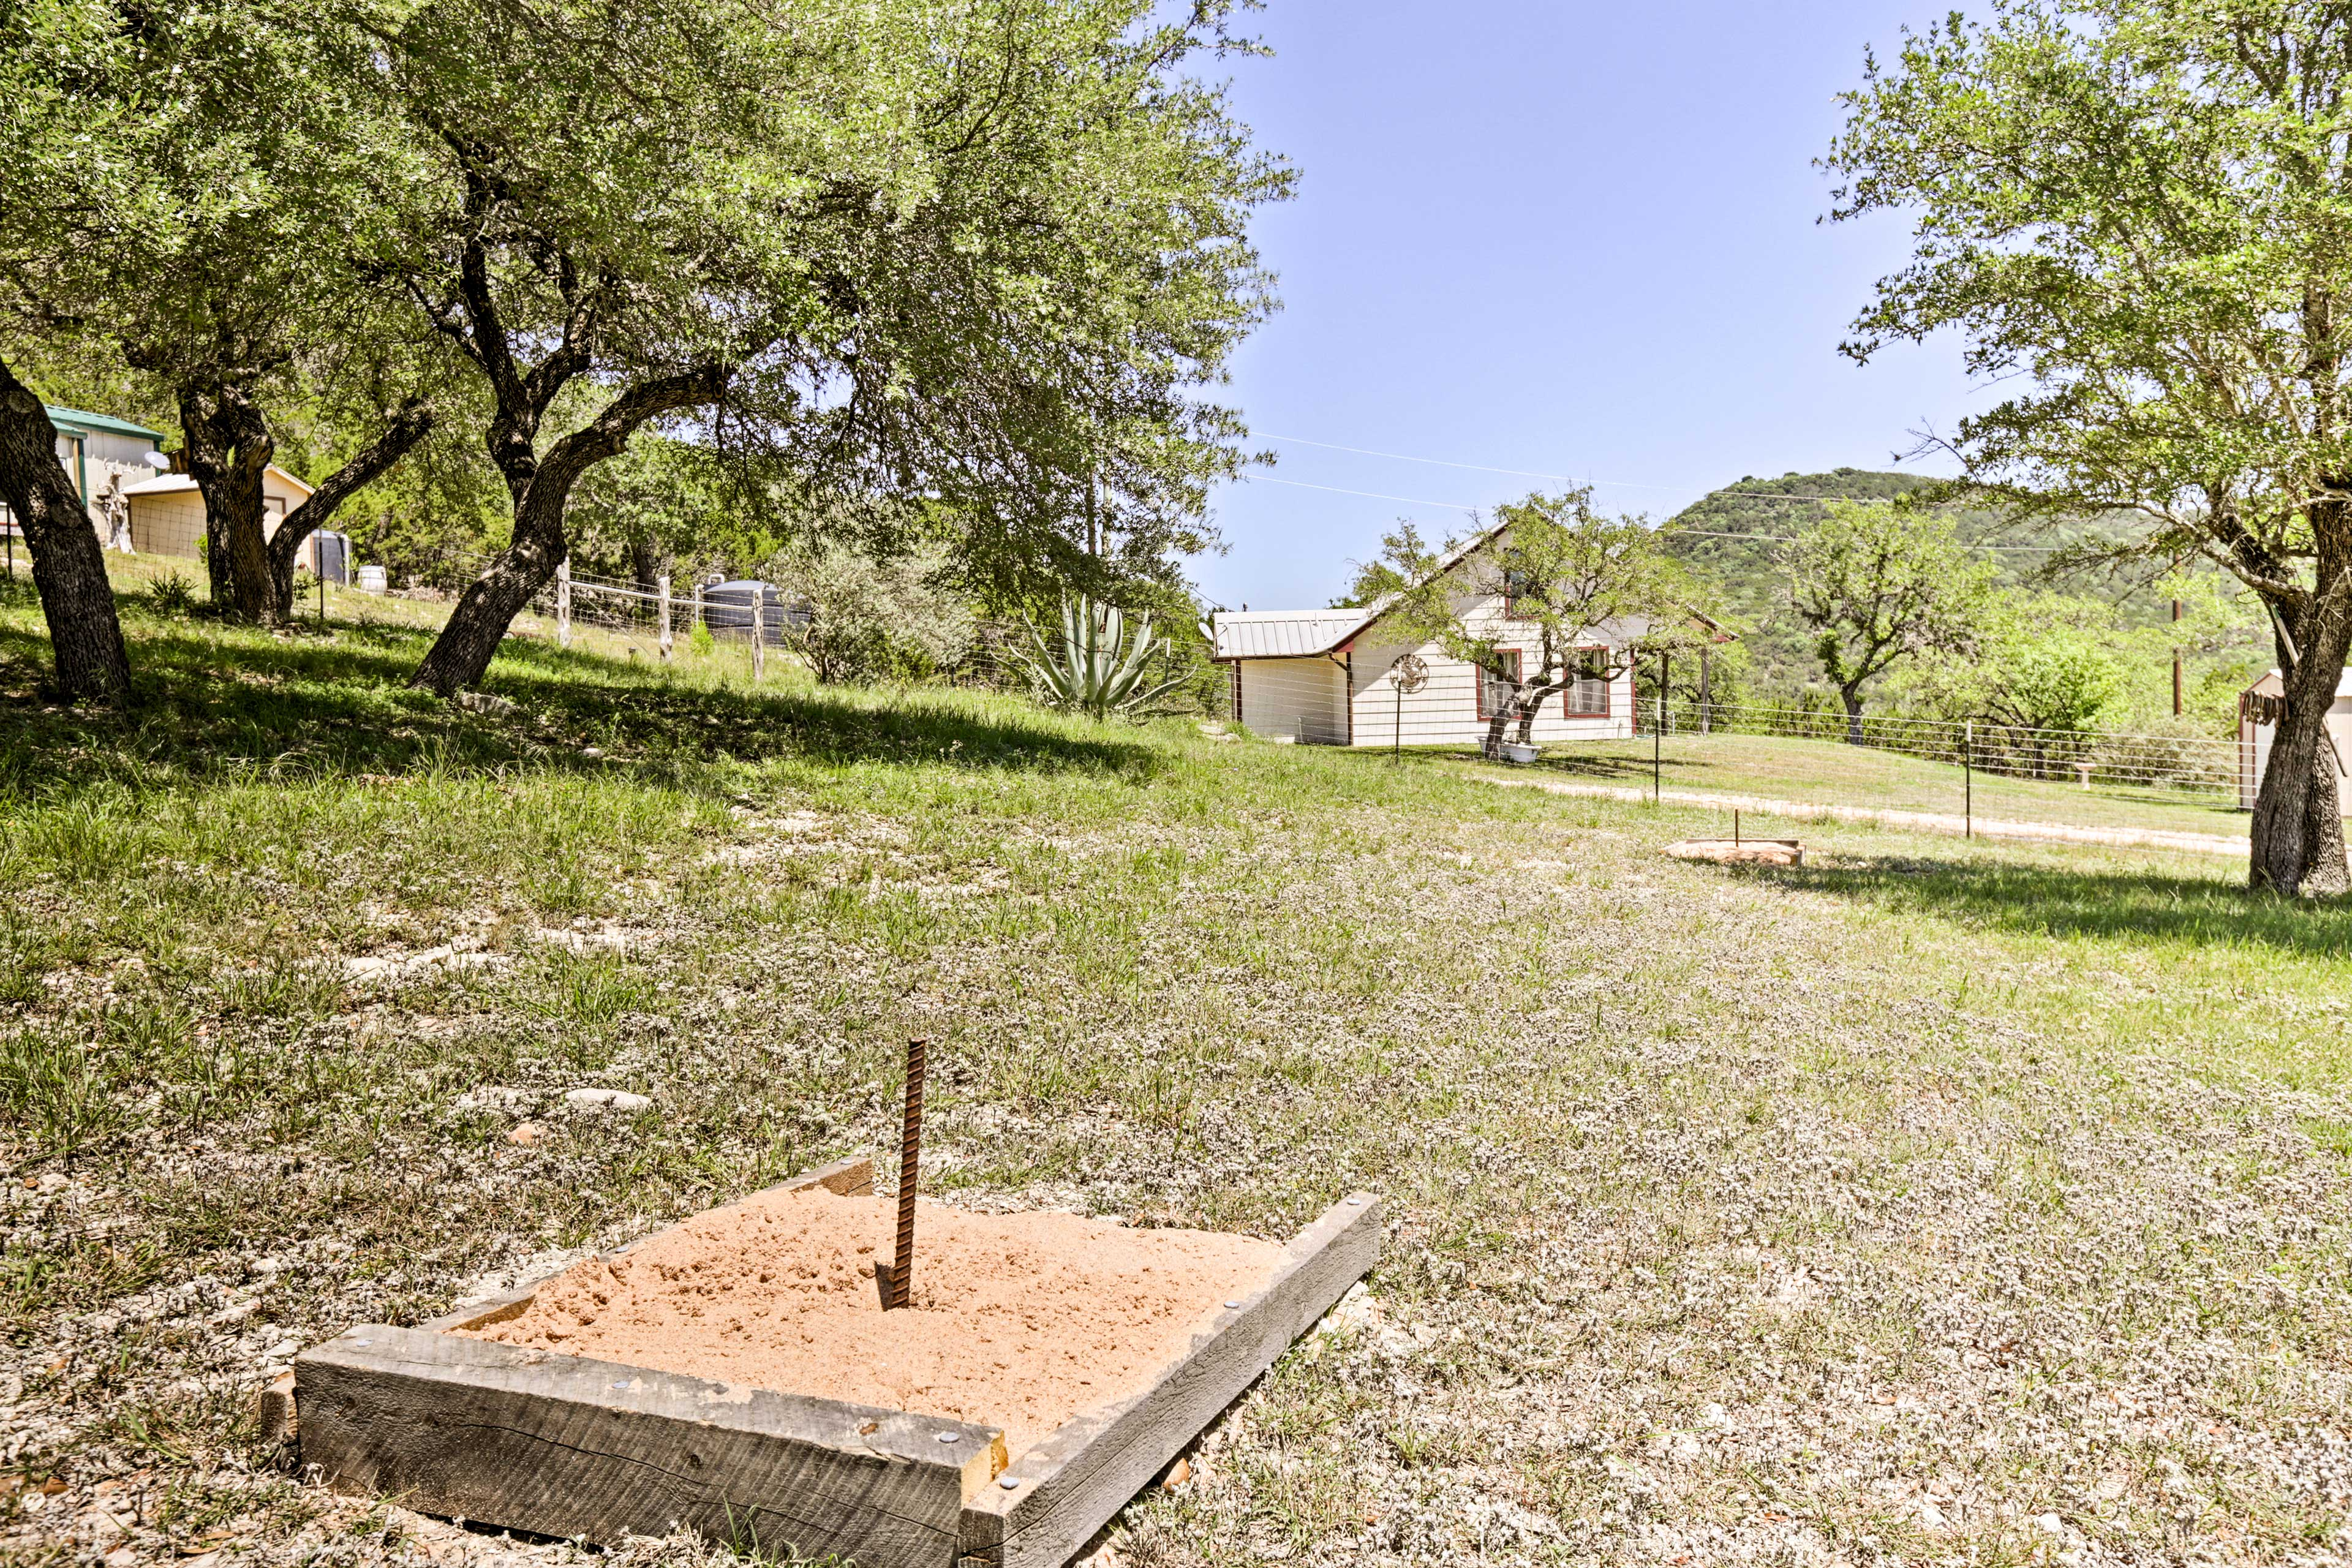 Get your competitive juices flowing with a game of horseshoes.